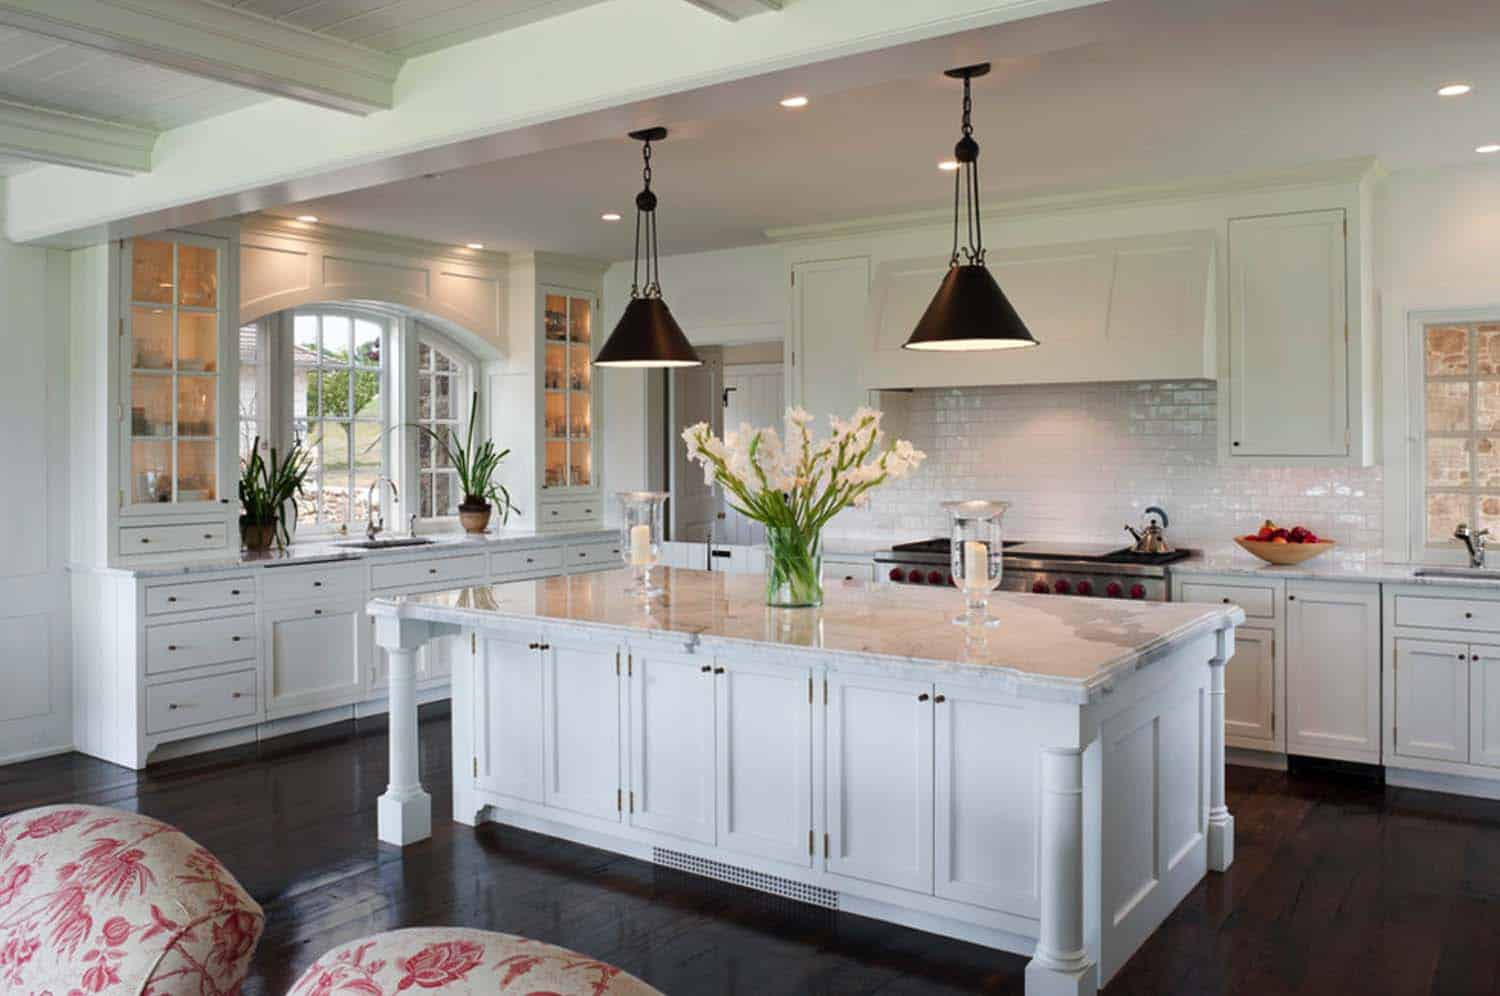 island for small kitchen ideas 30 brilliant kitchen island ideas that make a statement 6107